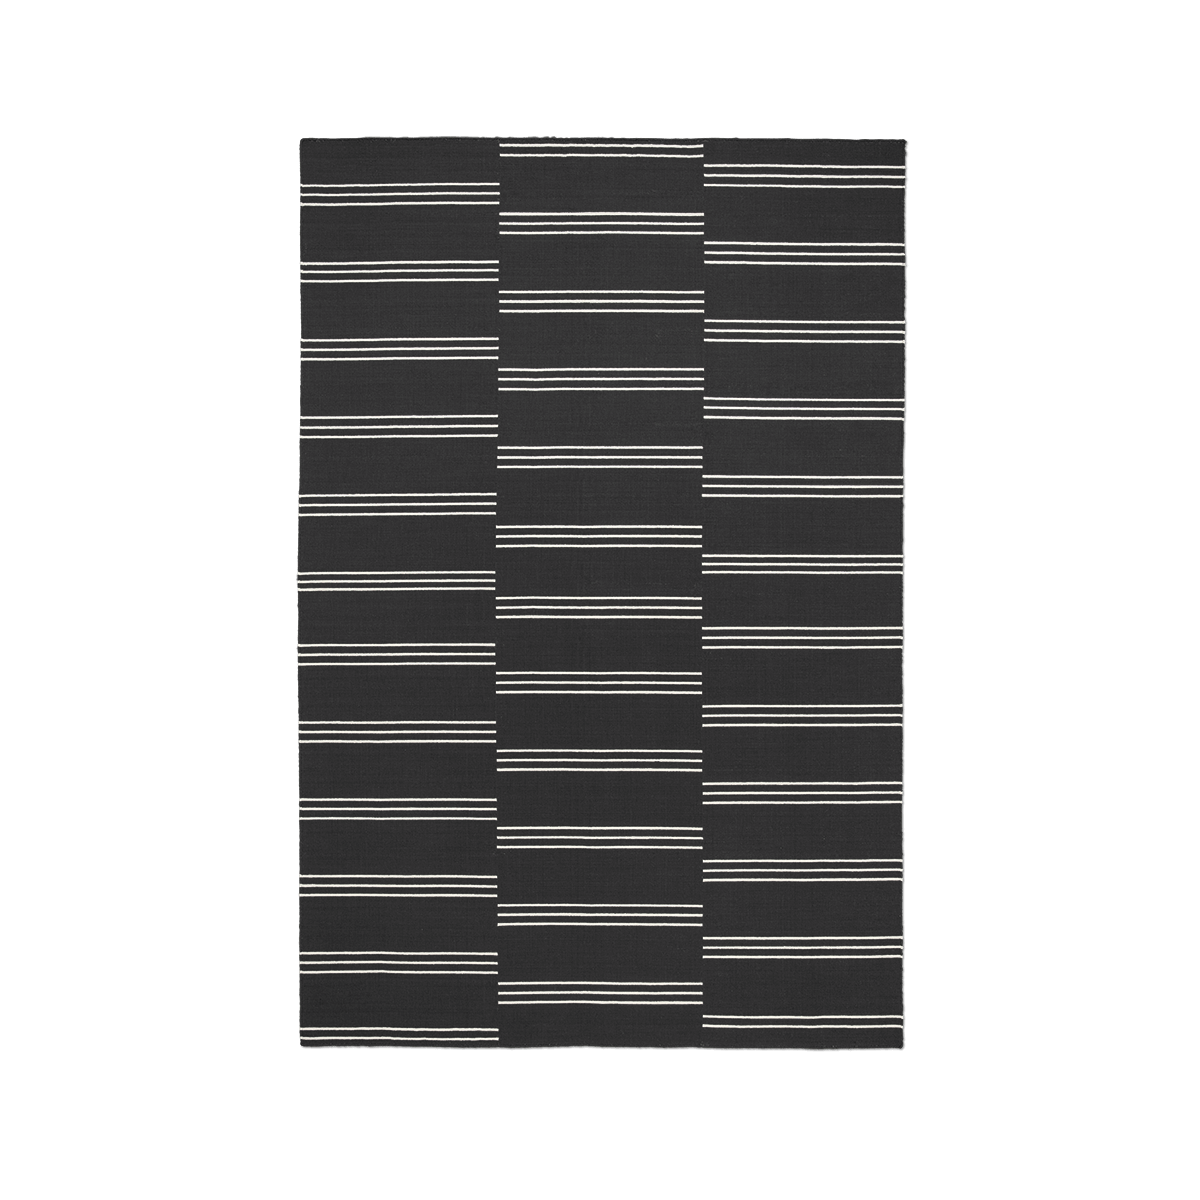 Product image of flatweave rug Stripes in color Anthracite and Cream.